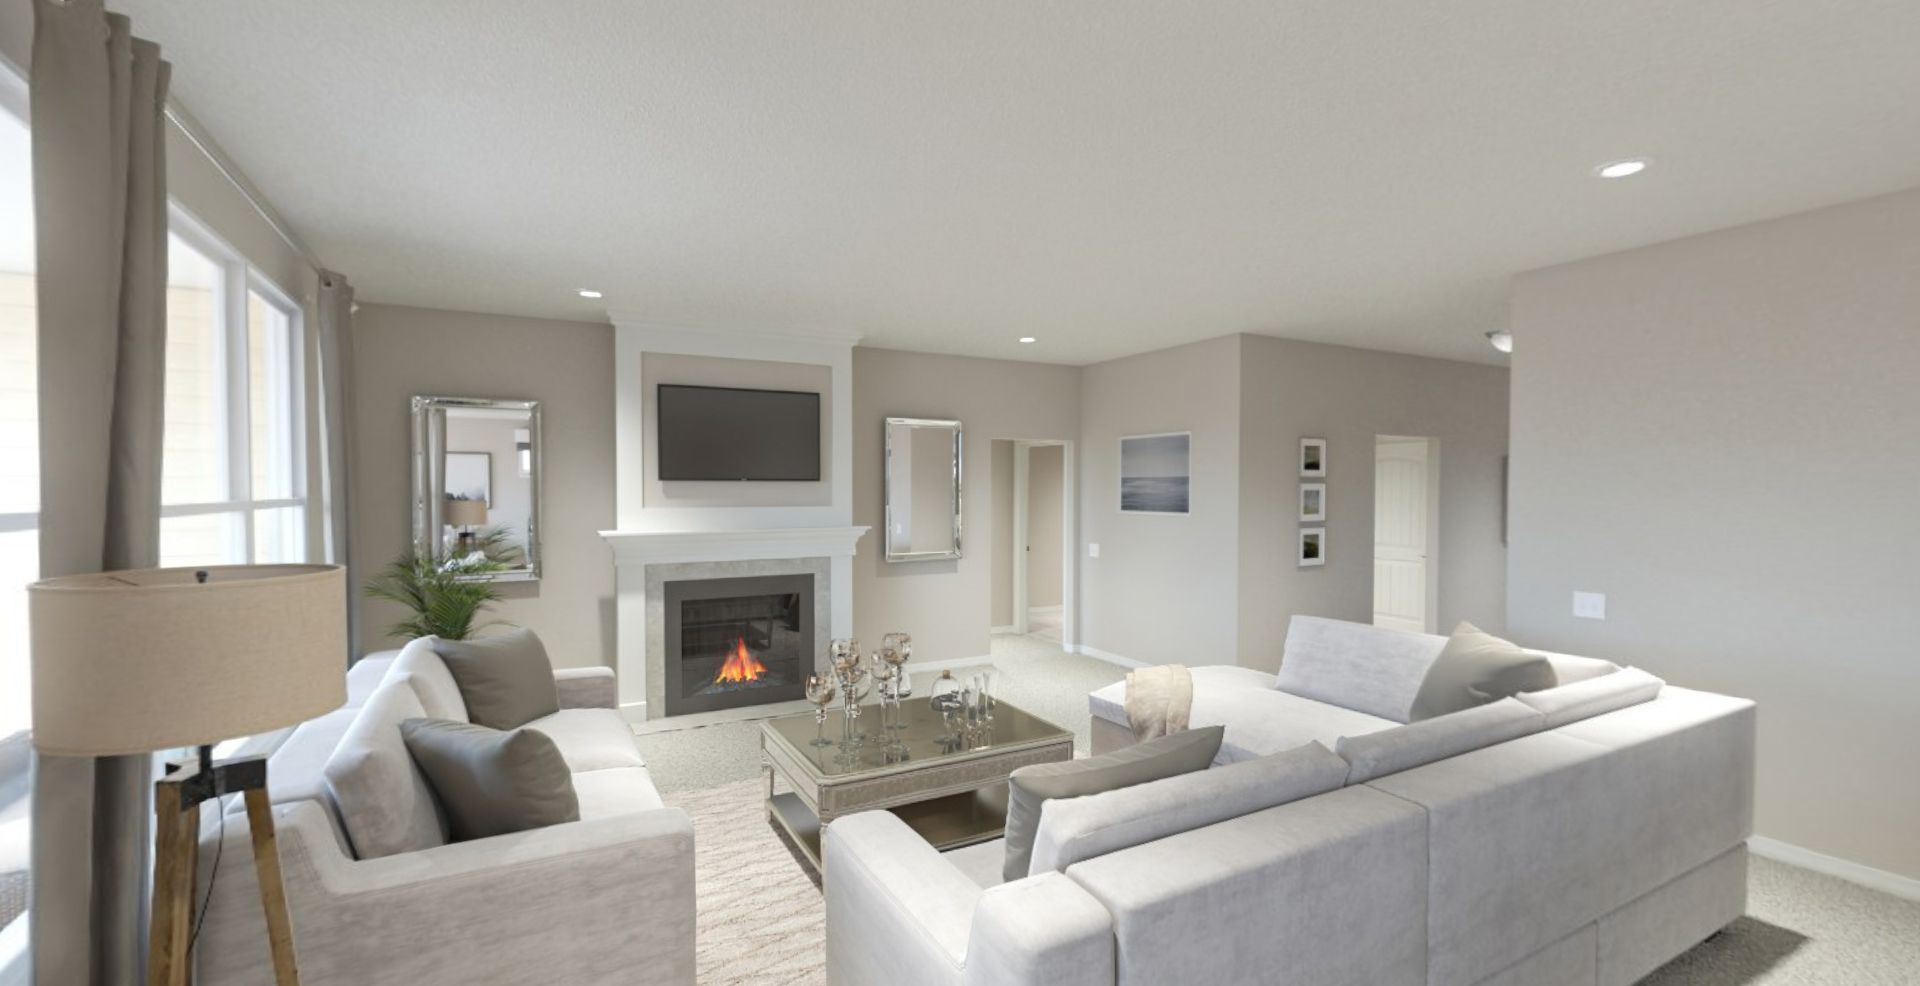 Living Area featured in the Cadenza By Olthof Homes in Indianapolis, IN